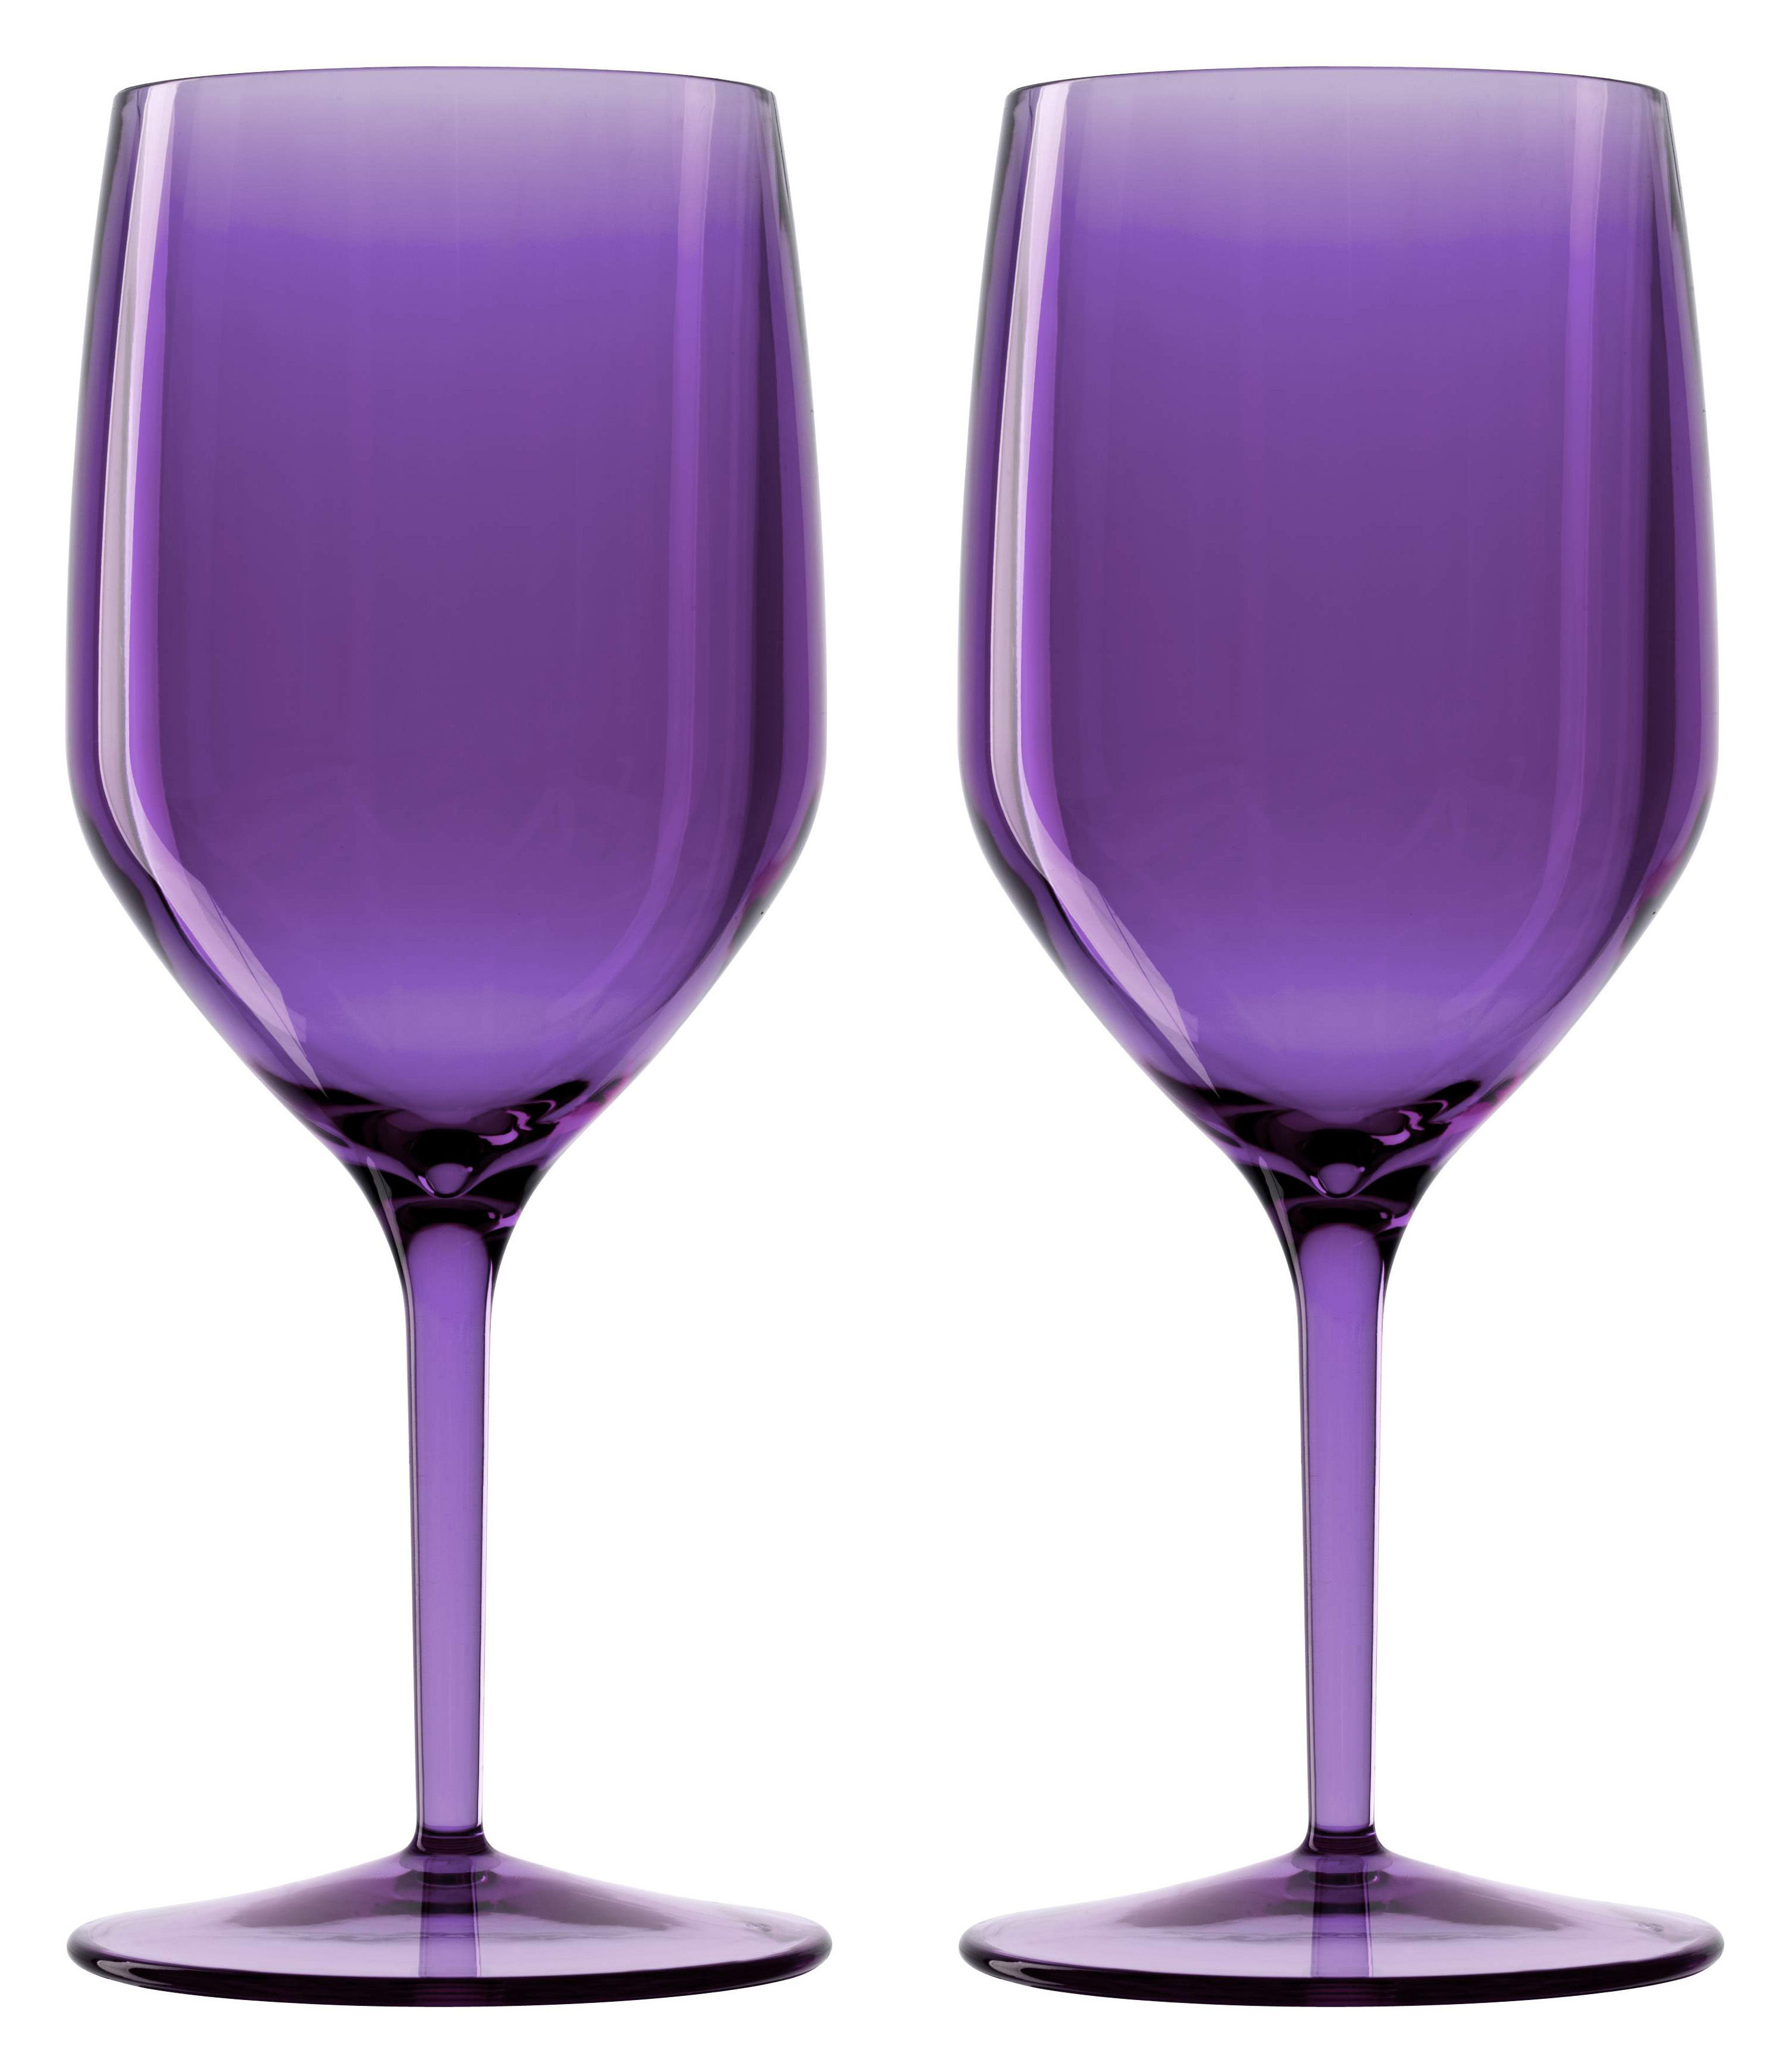 Arts de la table - Verres  - Verre à vin Vertical Beach / 33 cl - Lot de 6 verres dont 1 offert - Italesse - Violet - Policrystal